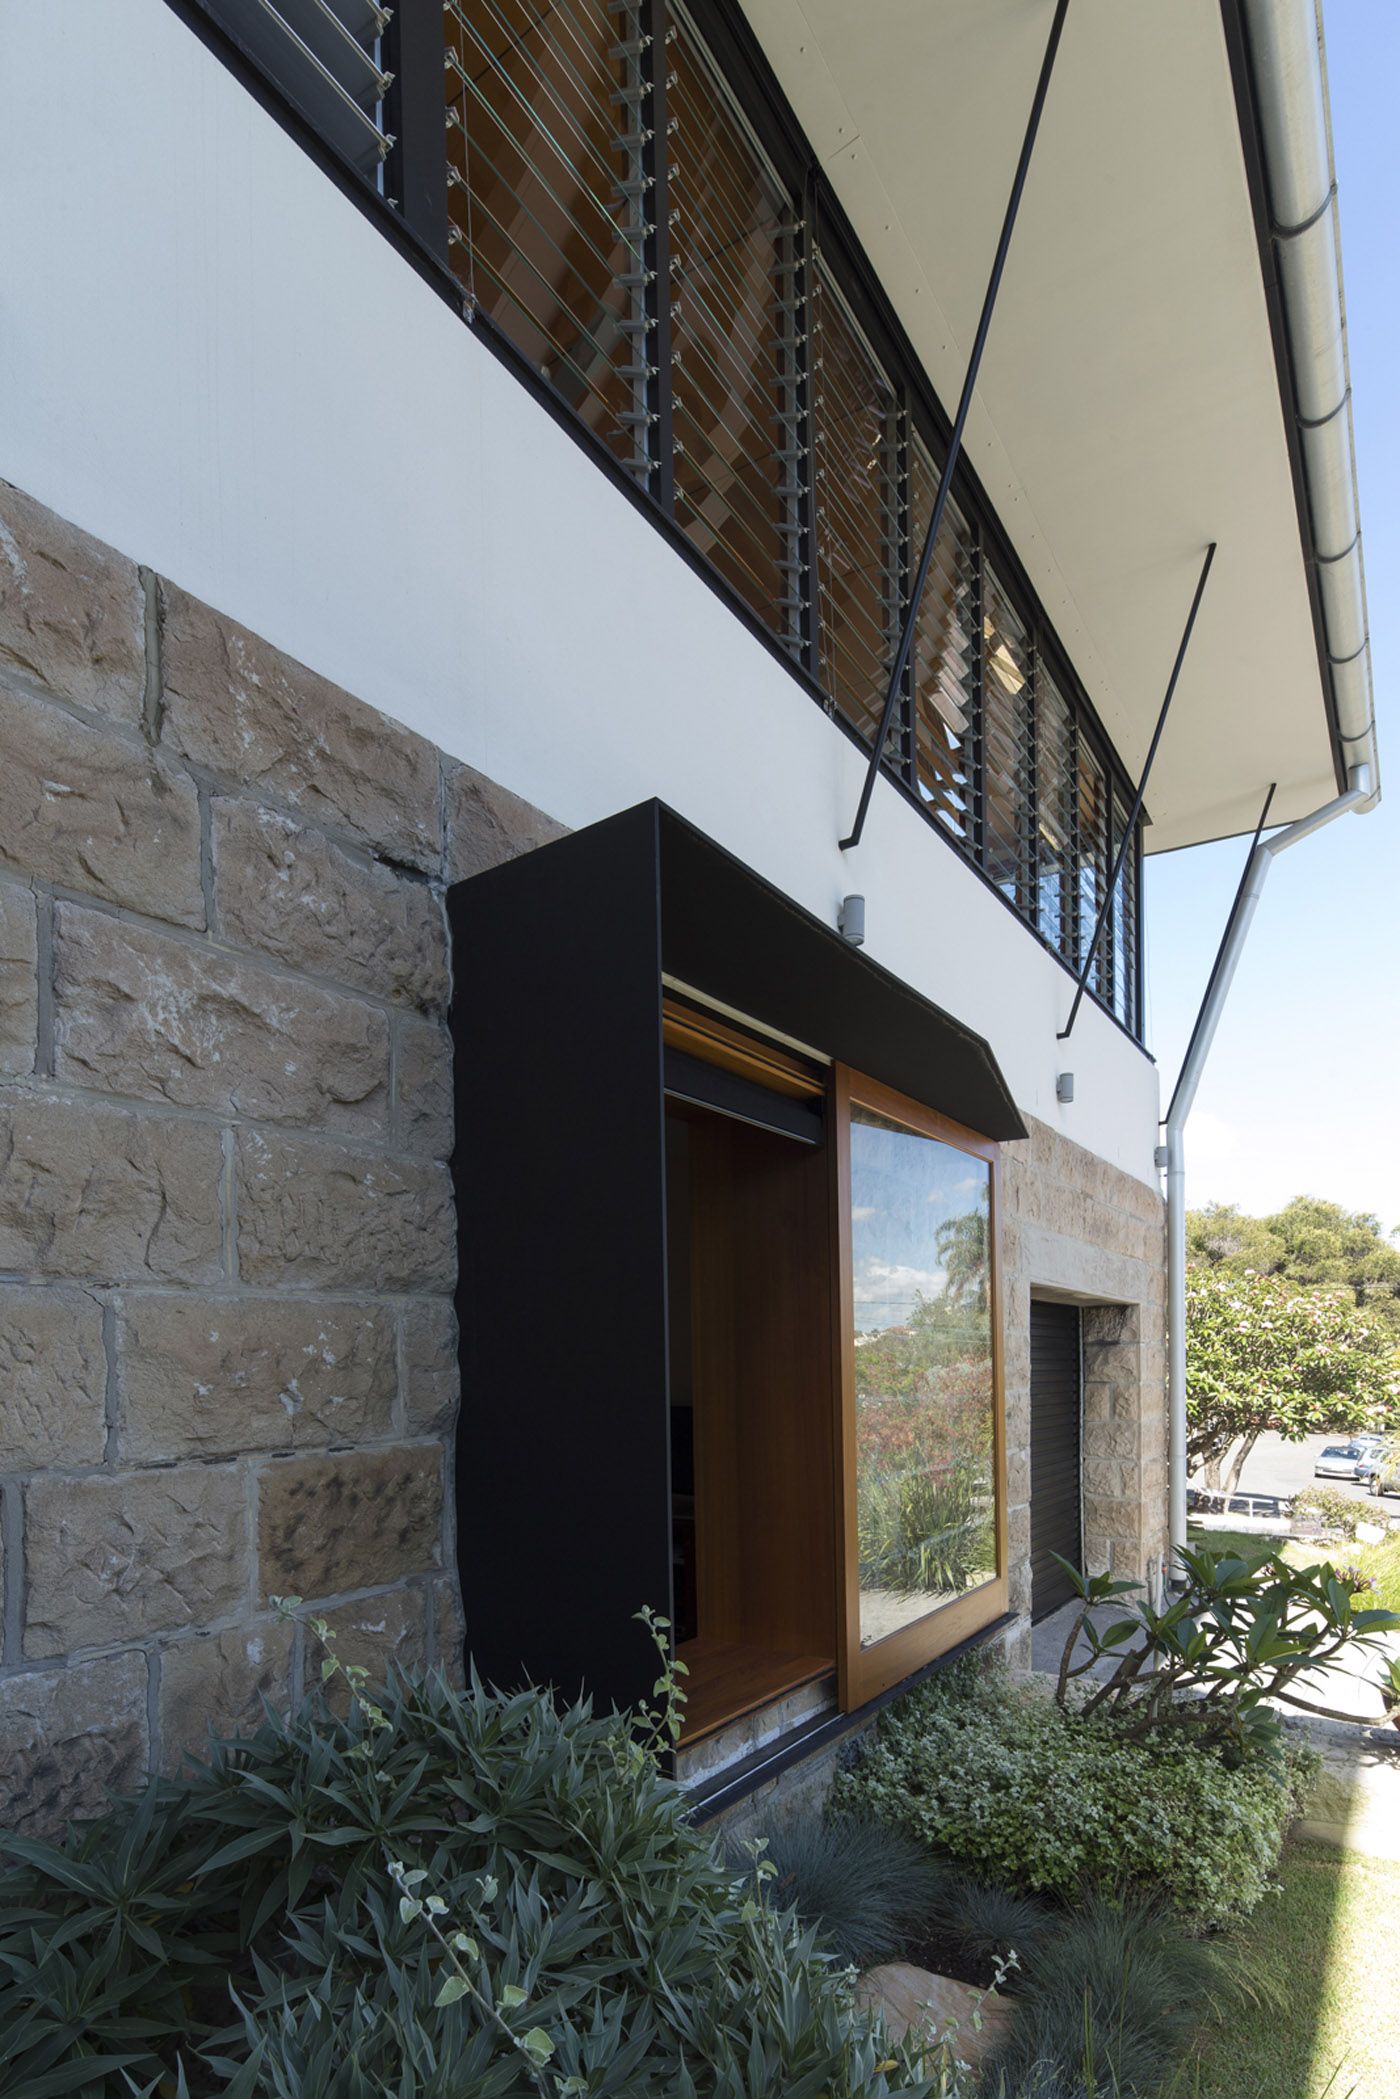 Salgo Kitching House by Sydney award winning architecture office Sam Crawford Architects. Folded steel and large timber windows addition to existing stone wall.